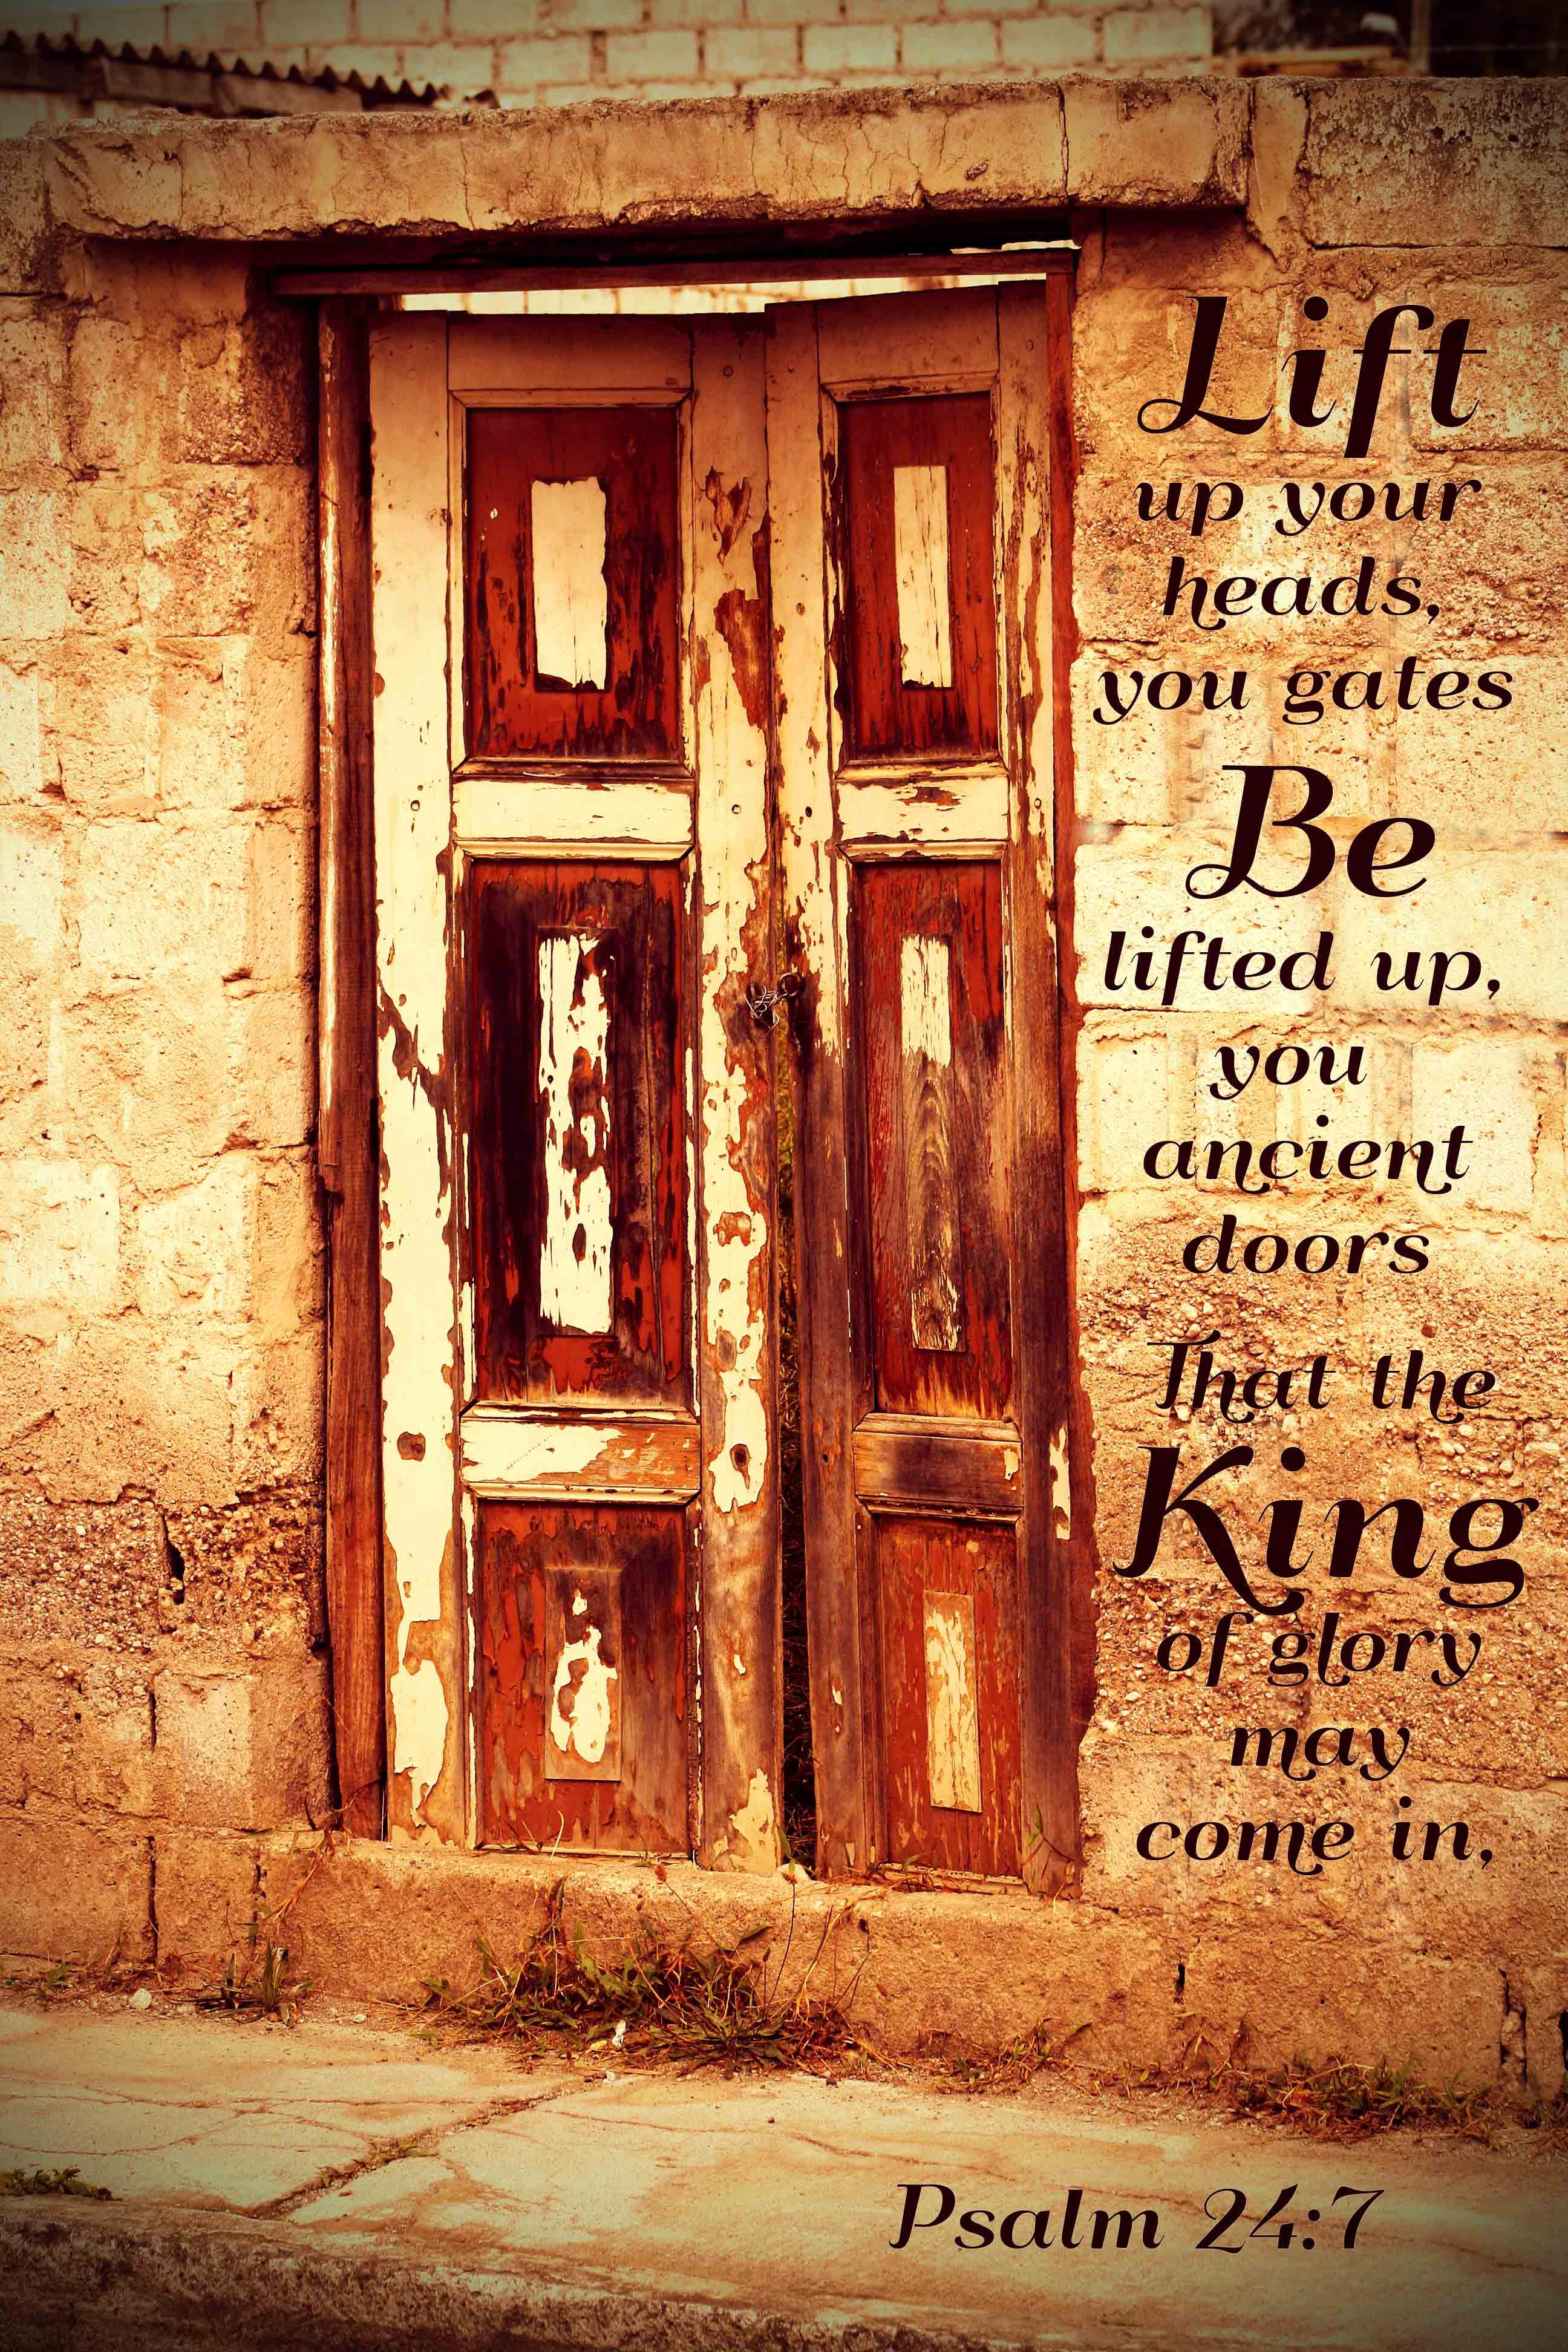 Lift up Your Heads - from Psalm 24:7 - praisequotes.com | Psalms, Psalm 24, Scripture of the day